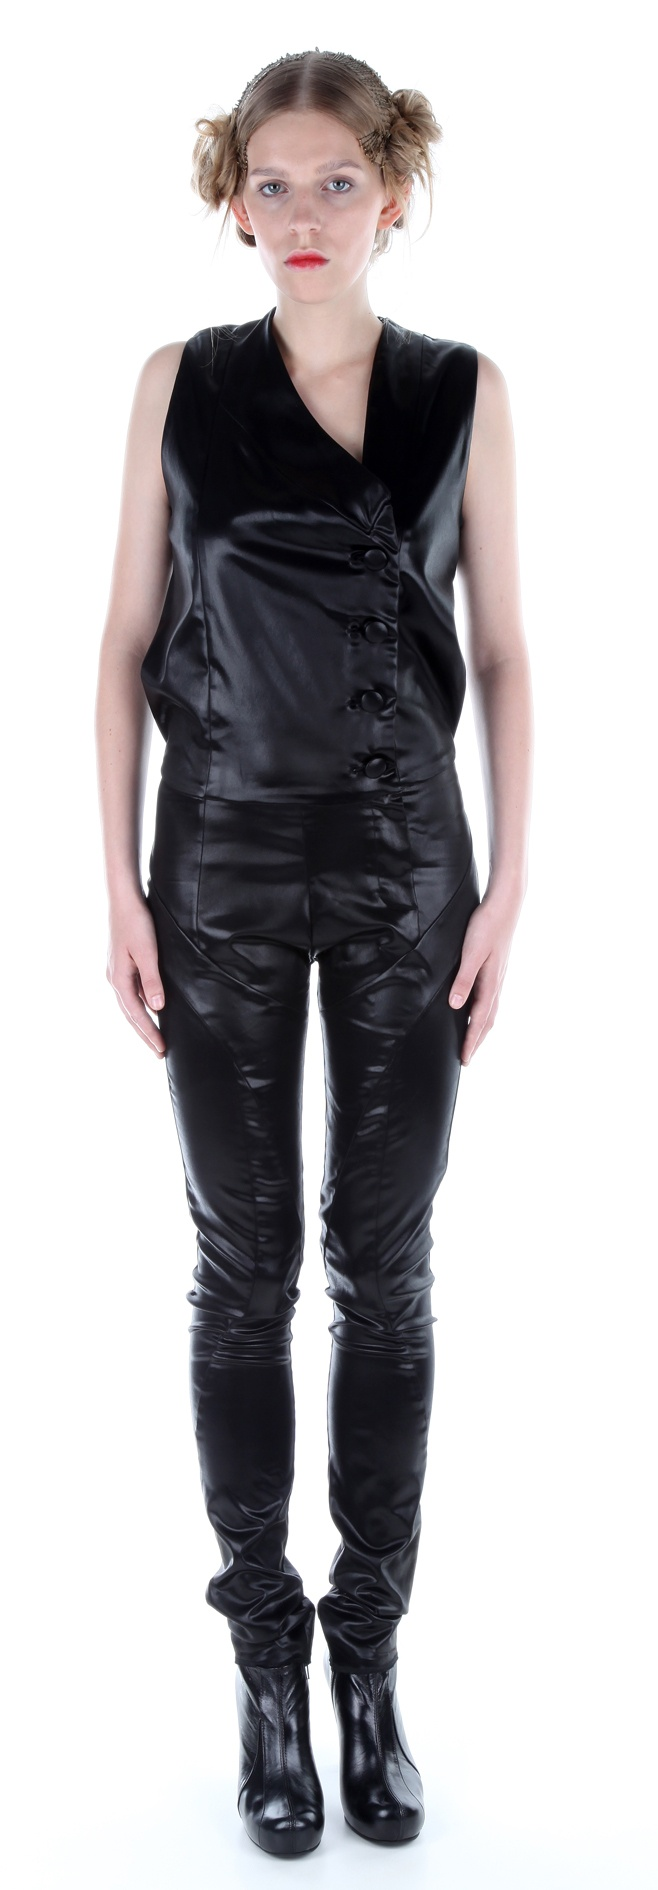 Jumpsuit ( silk satin), shoes ( leather, stainless-steel heel)